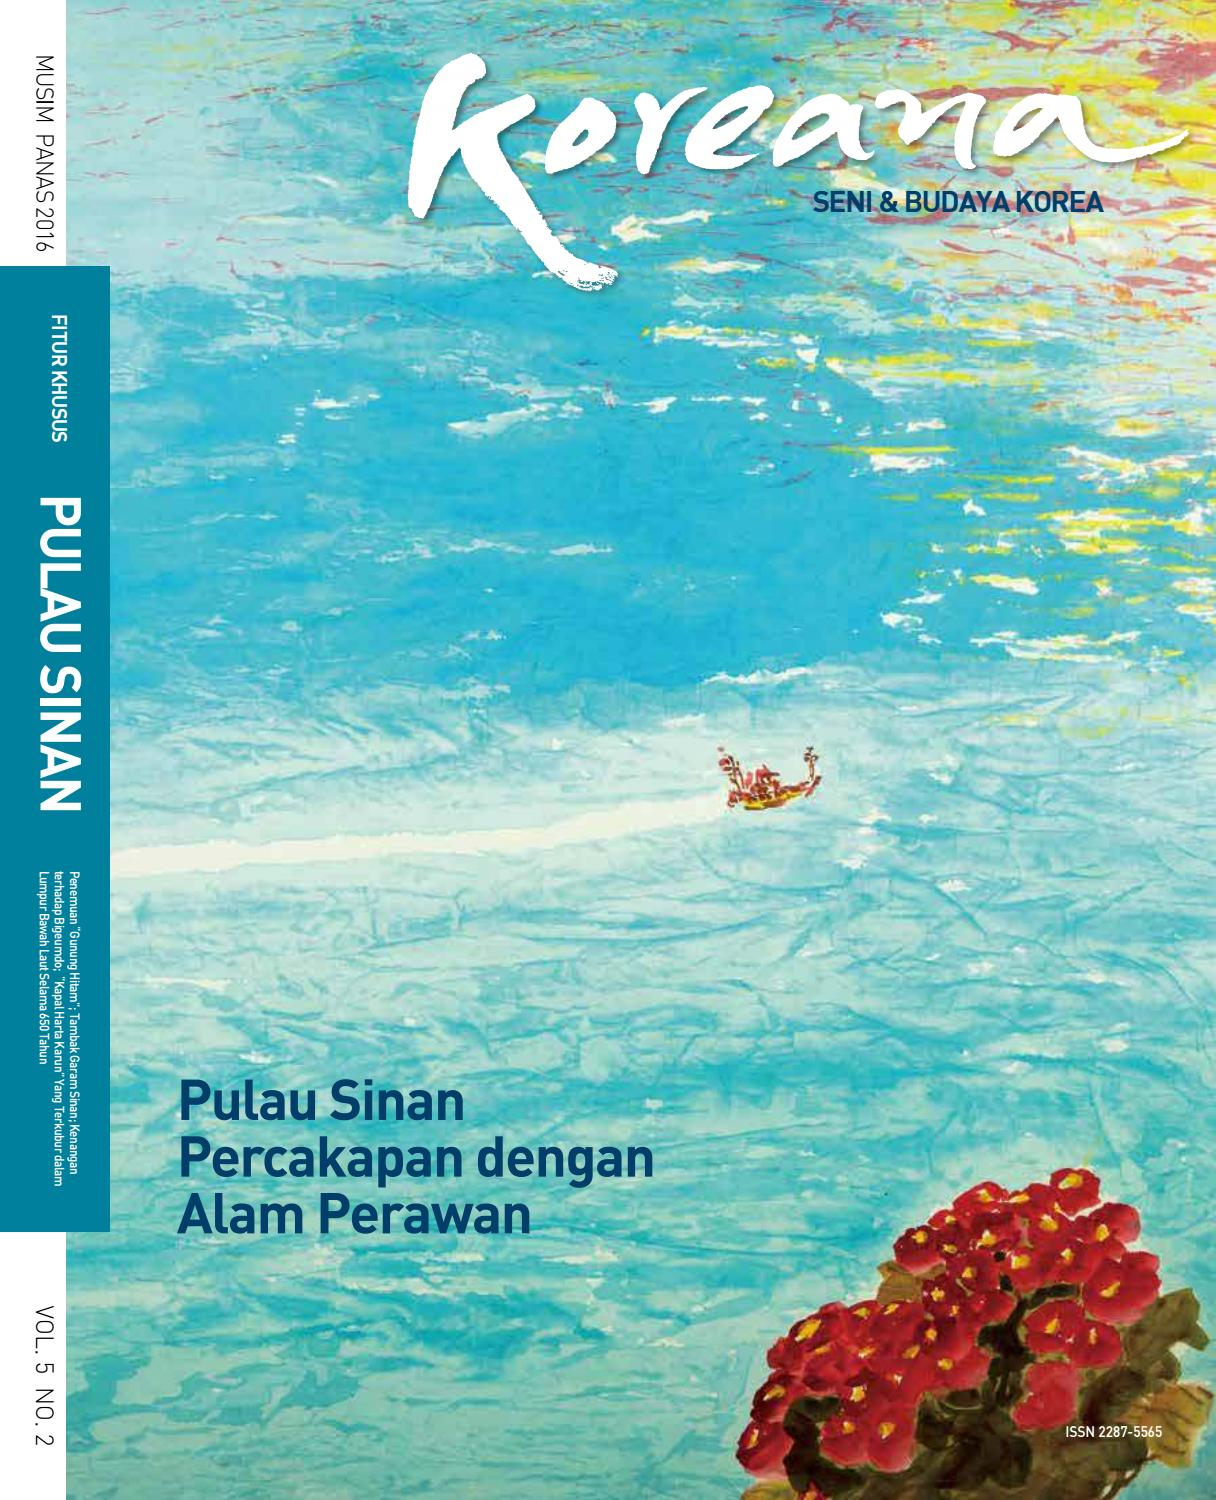 Koreana Summer 2016 Indonesian By The Korea Foundation Issuu